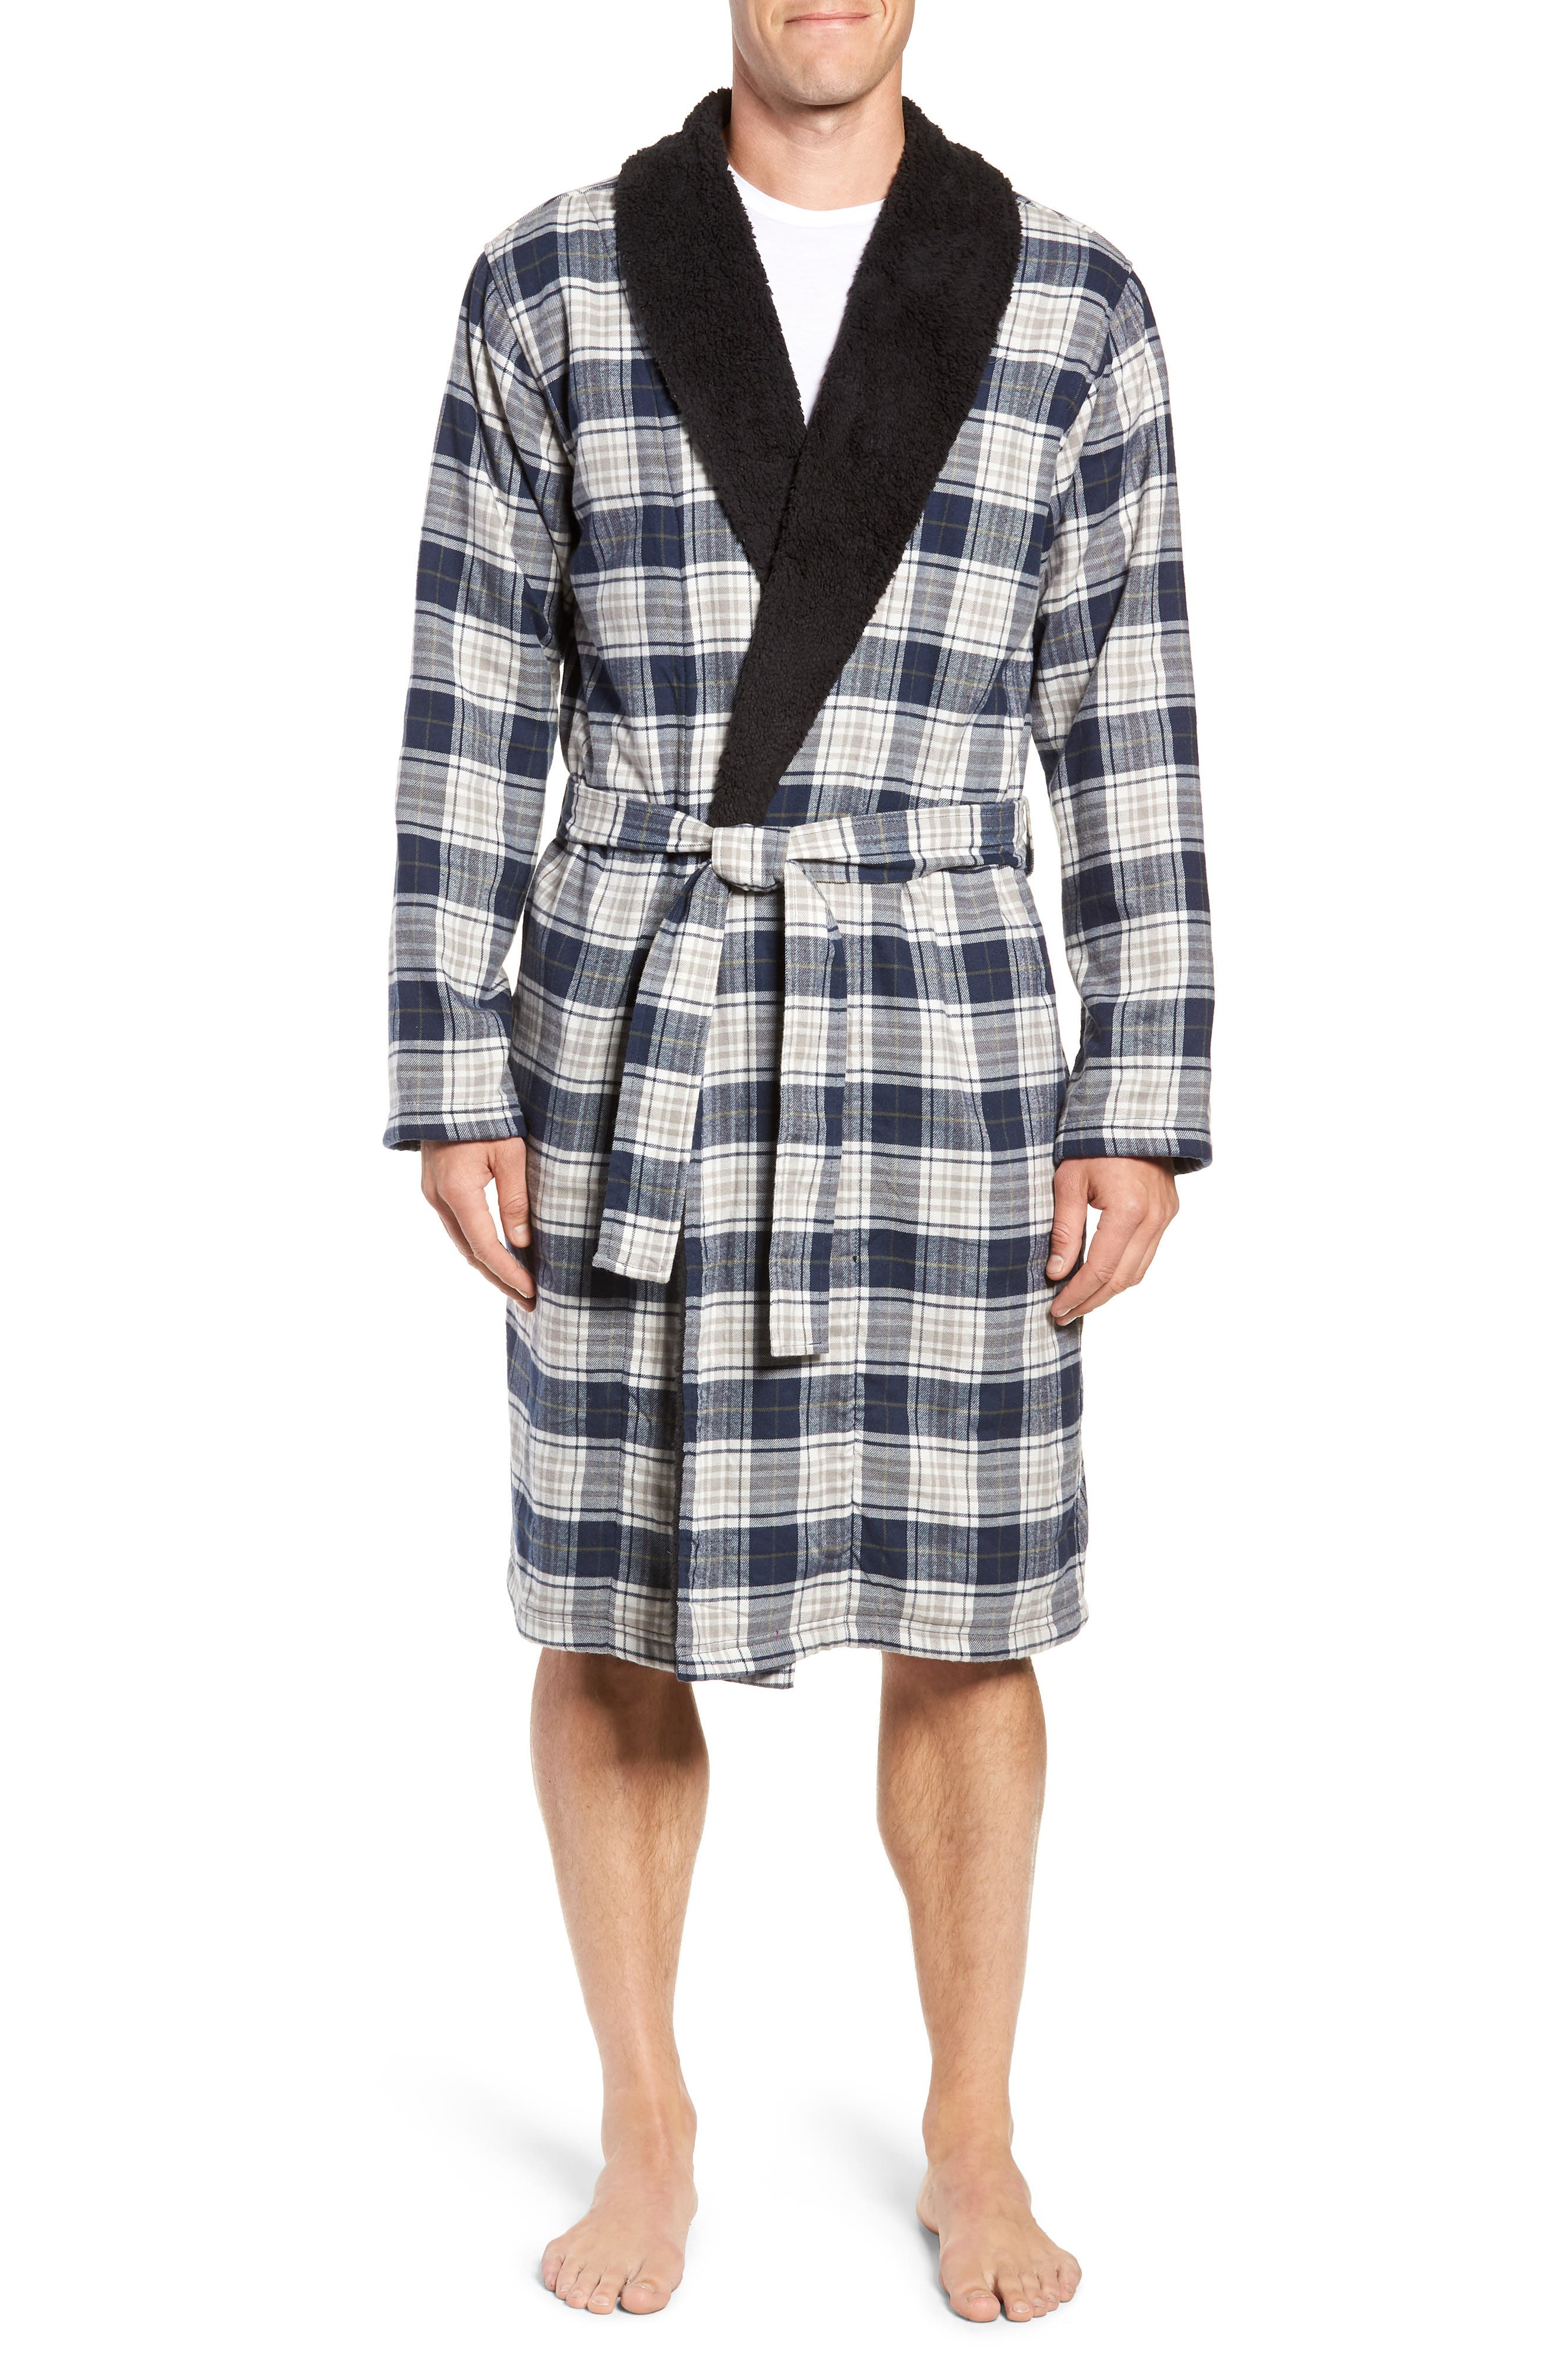 Men'S Kalib Sherpa-Lined Plaid Robe in Navy Plaid